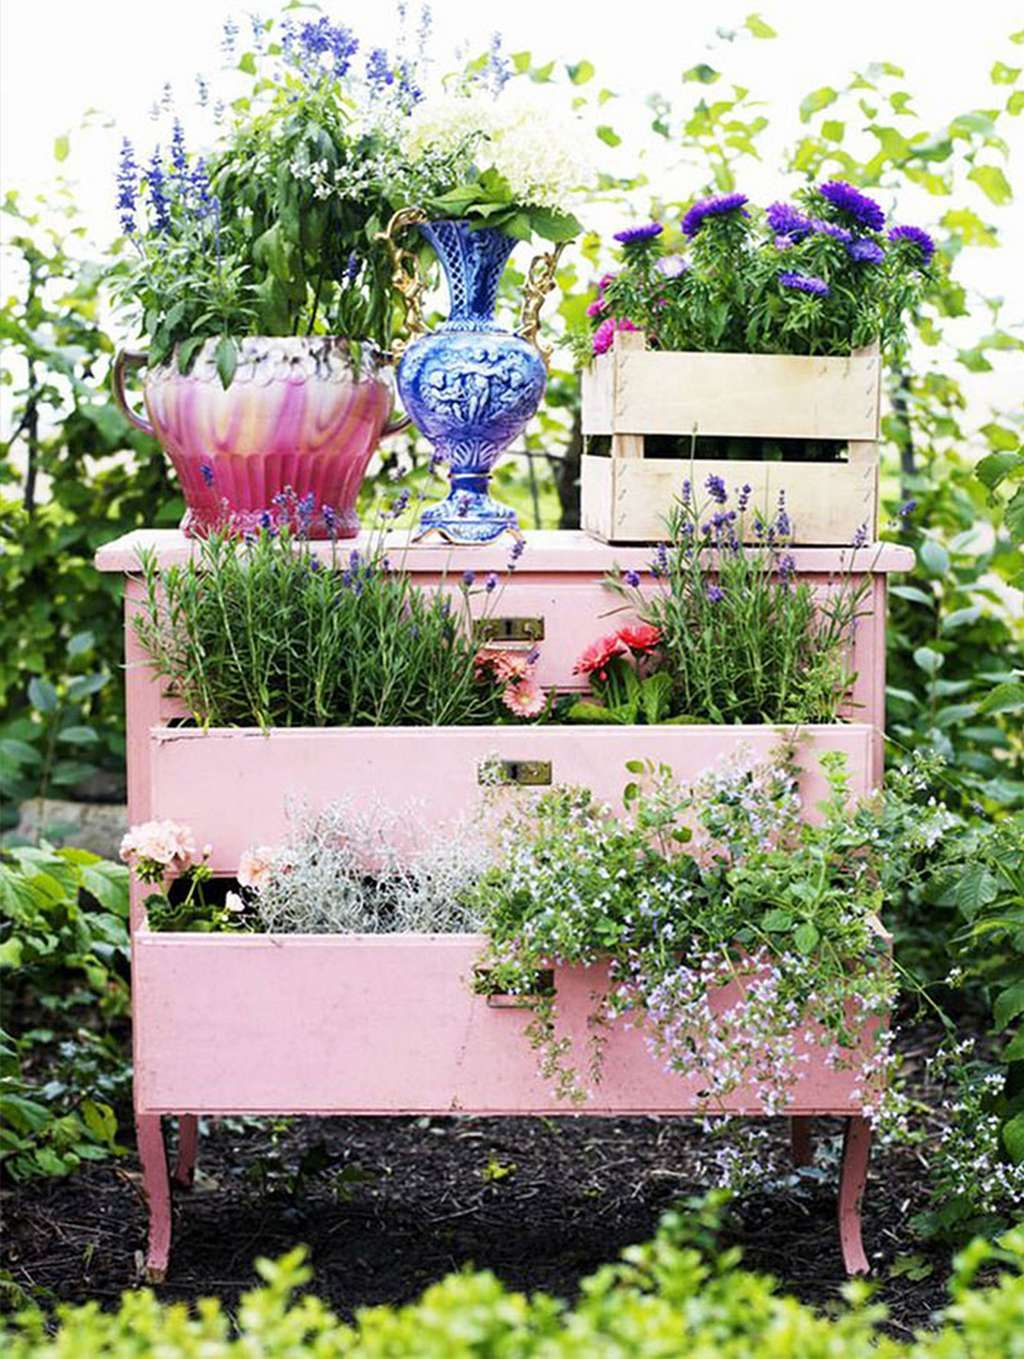 Top 15 Beautiful Ways To Recycle Your Old Furniture Into A Fairytale Garden | e7 News